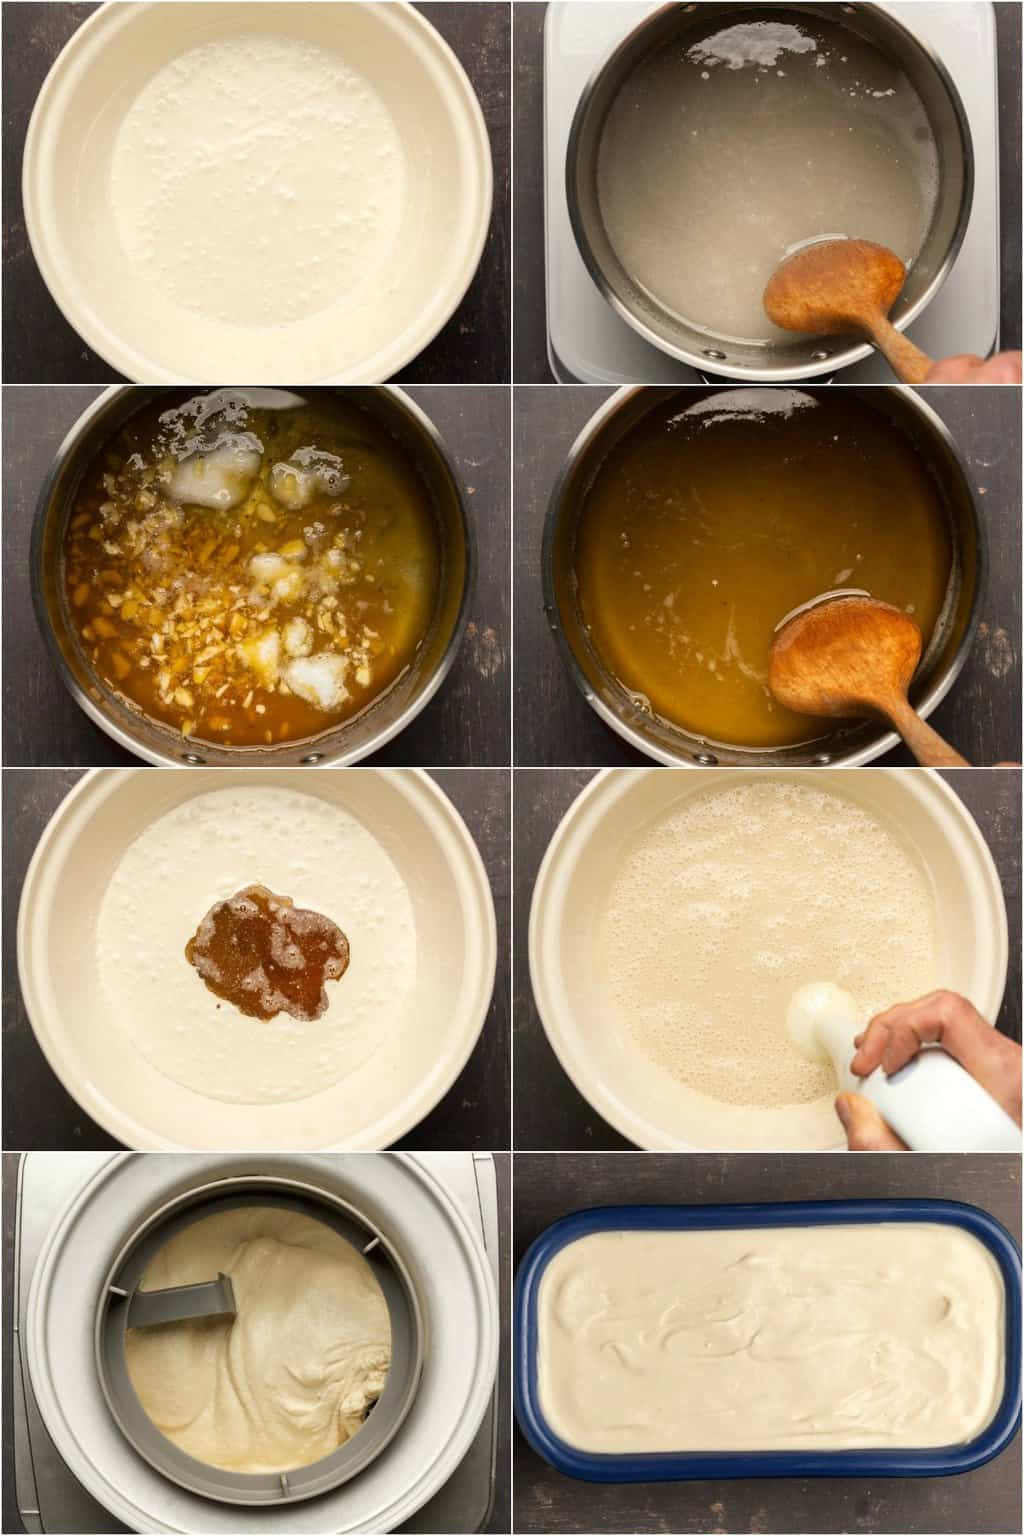 Step by step process photo collage of making vegan ice cream.